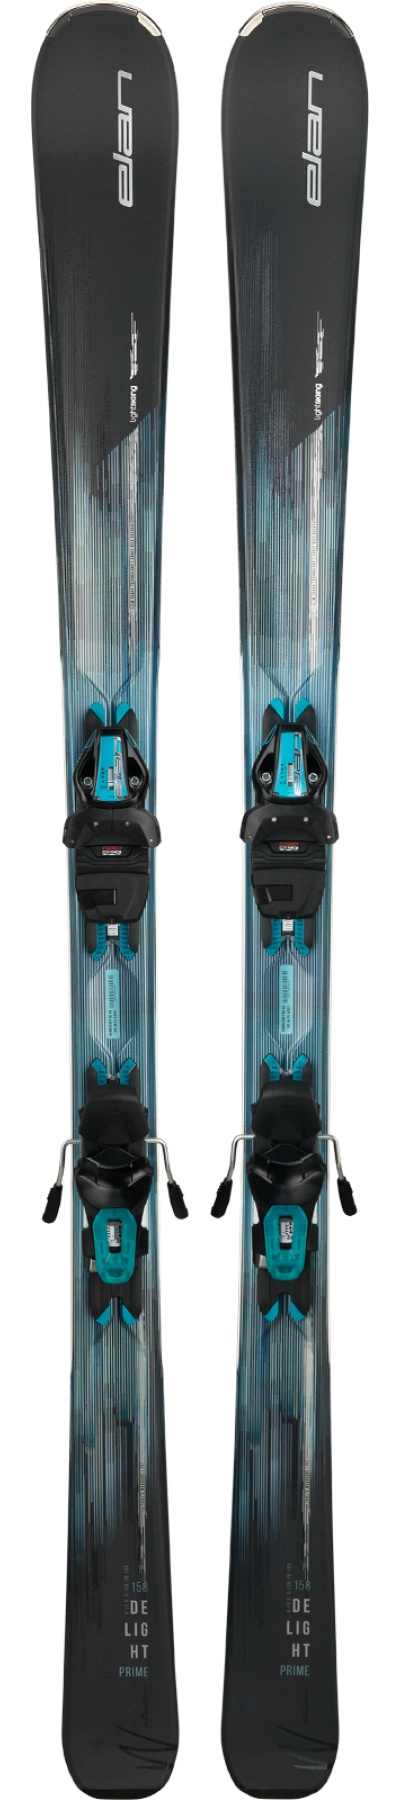 Image 0 of ELAN - DELIGHT PRIME Light Shift Skis W/EL9 GripWalk Binding, 164 cm only -2019